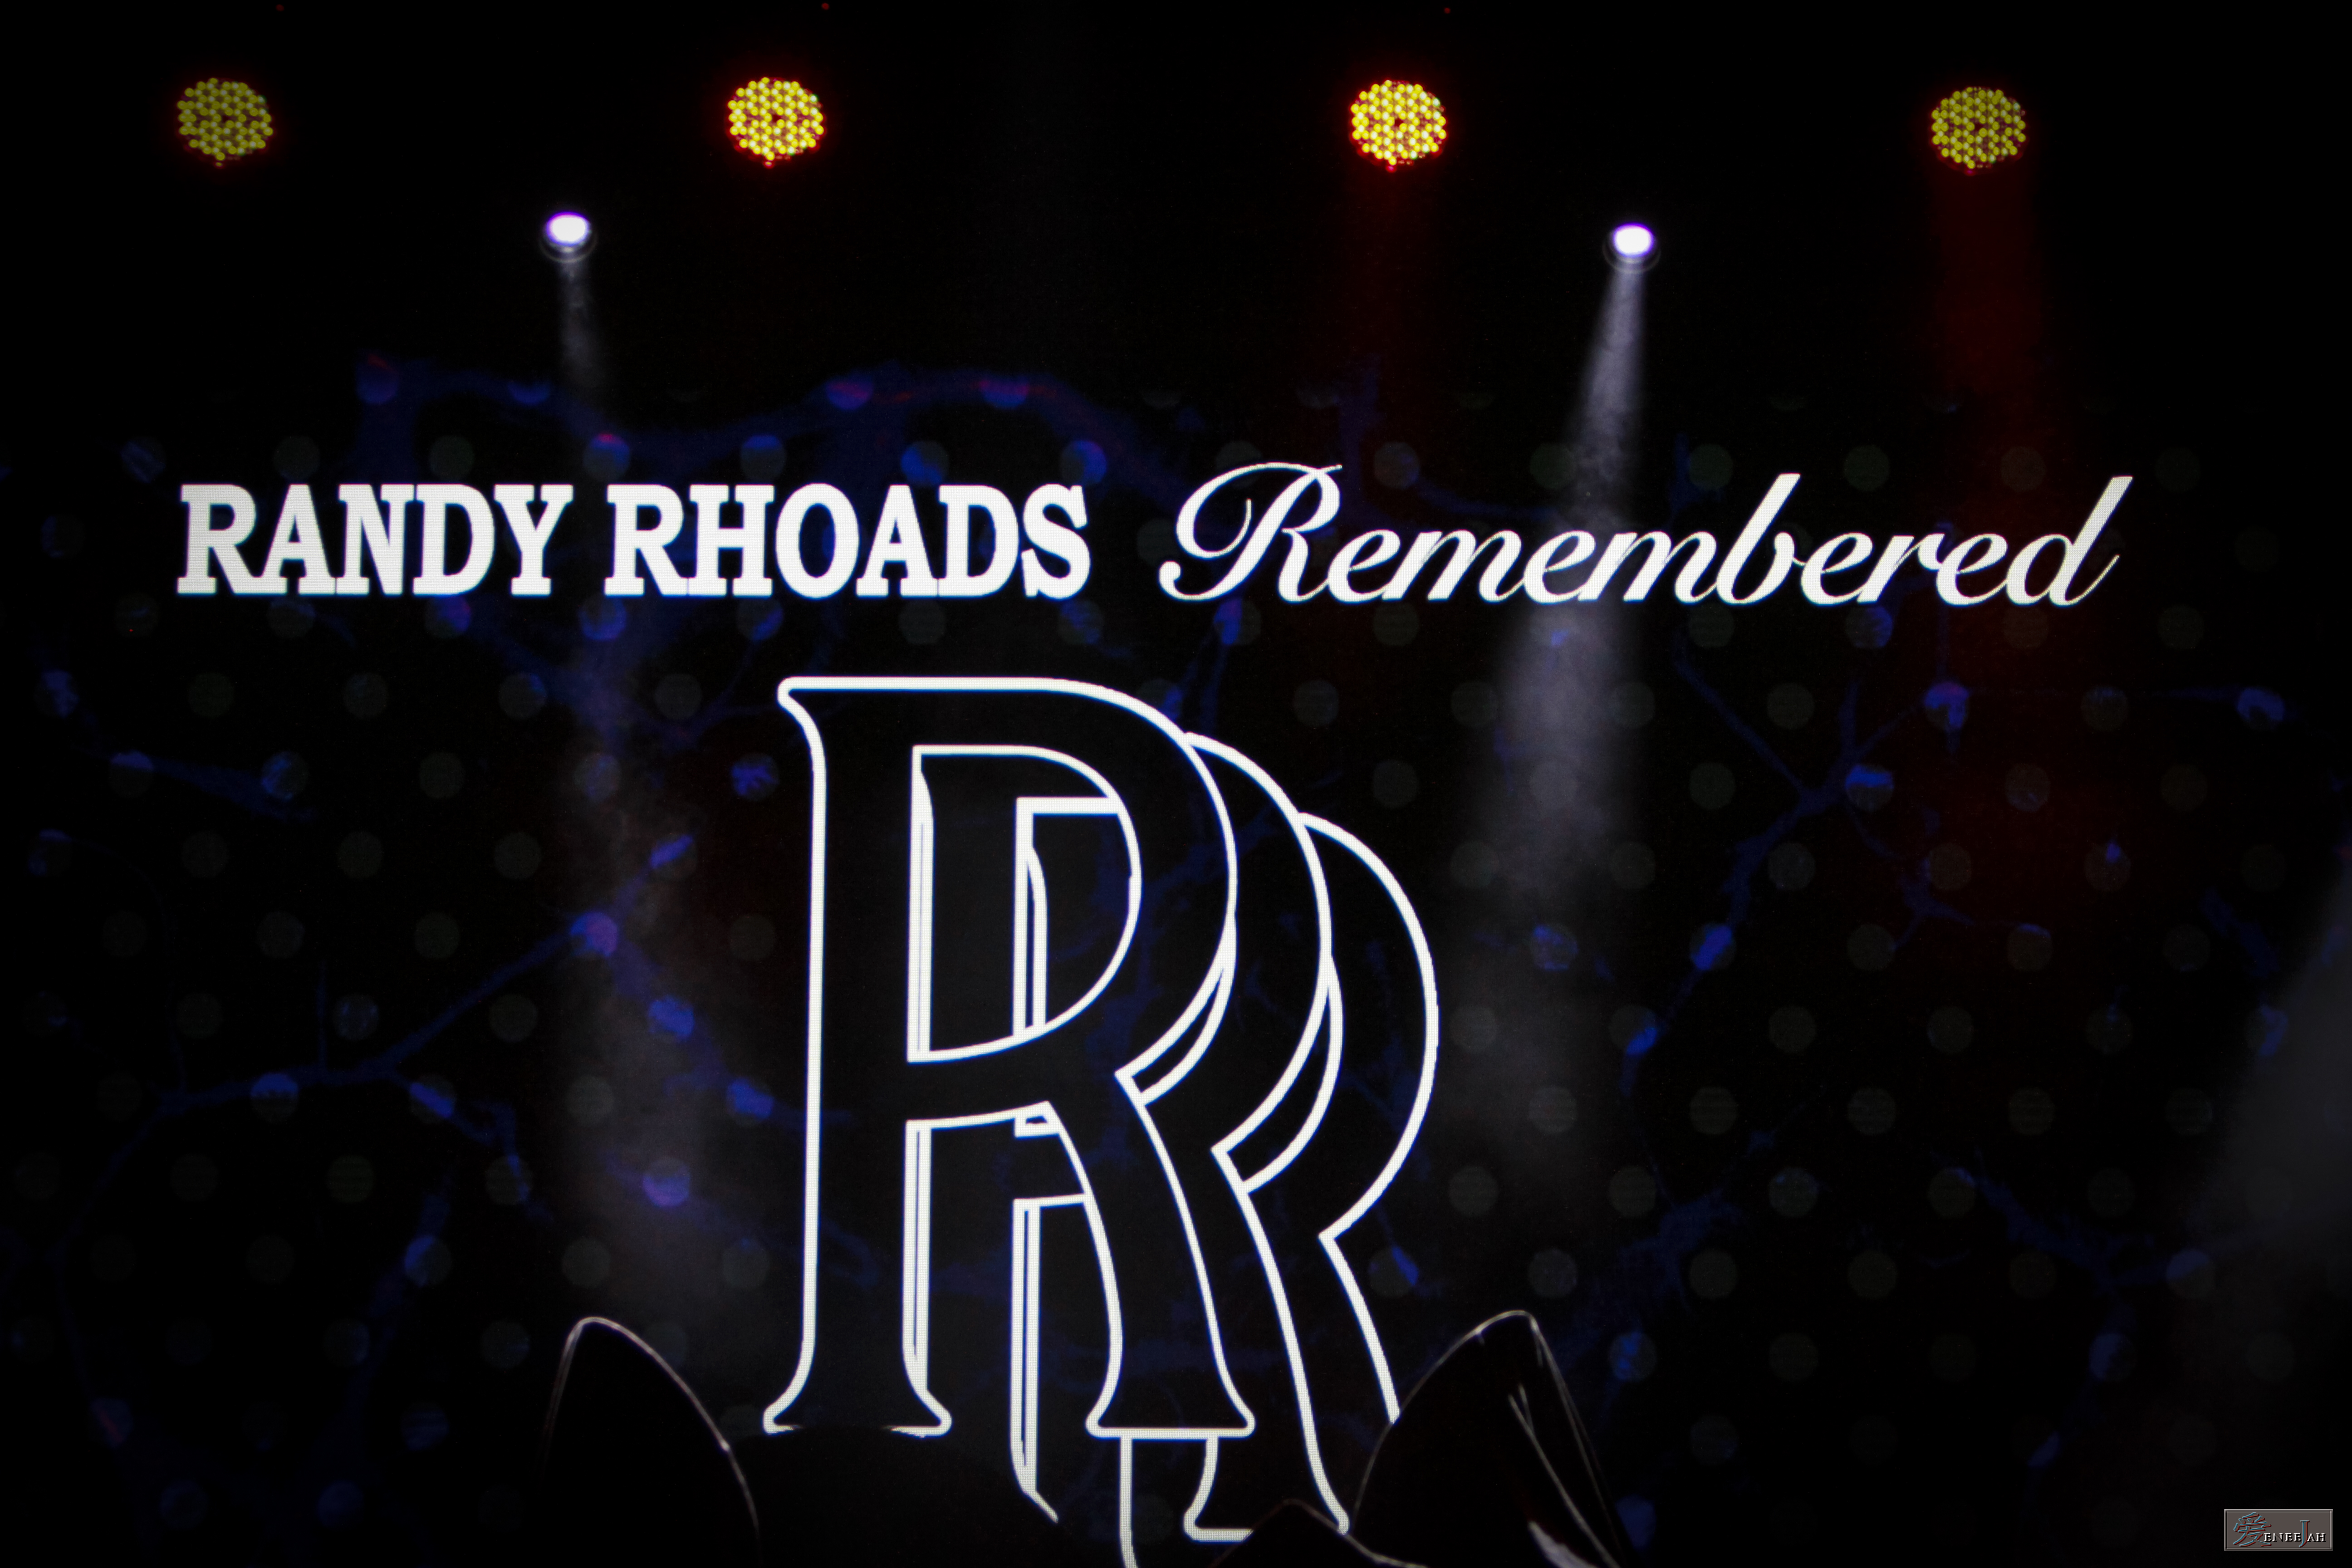 Randy Rhoads Remembered At NAMM 2018 Was A Night To Remember